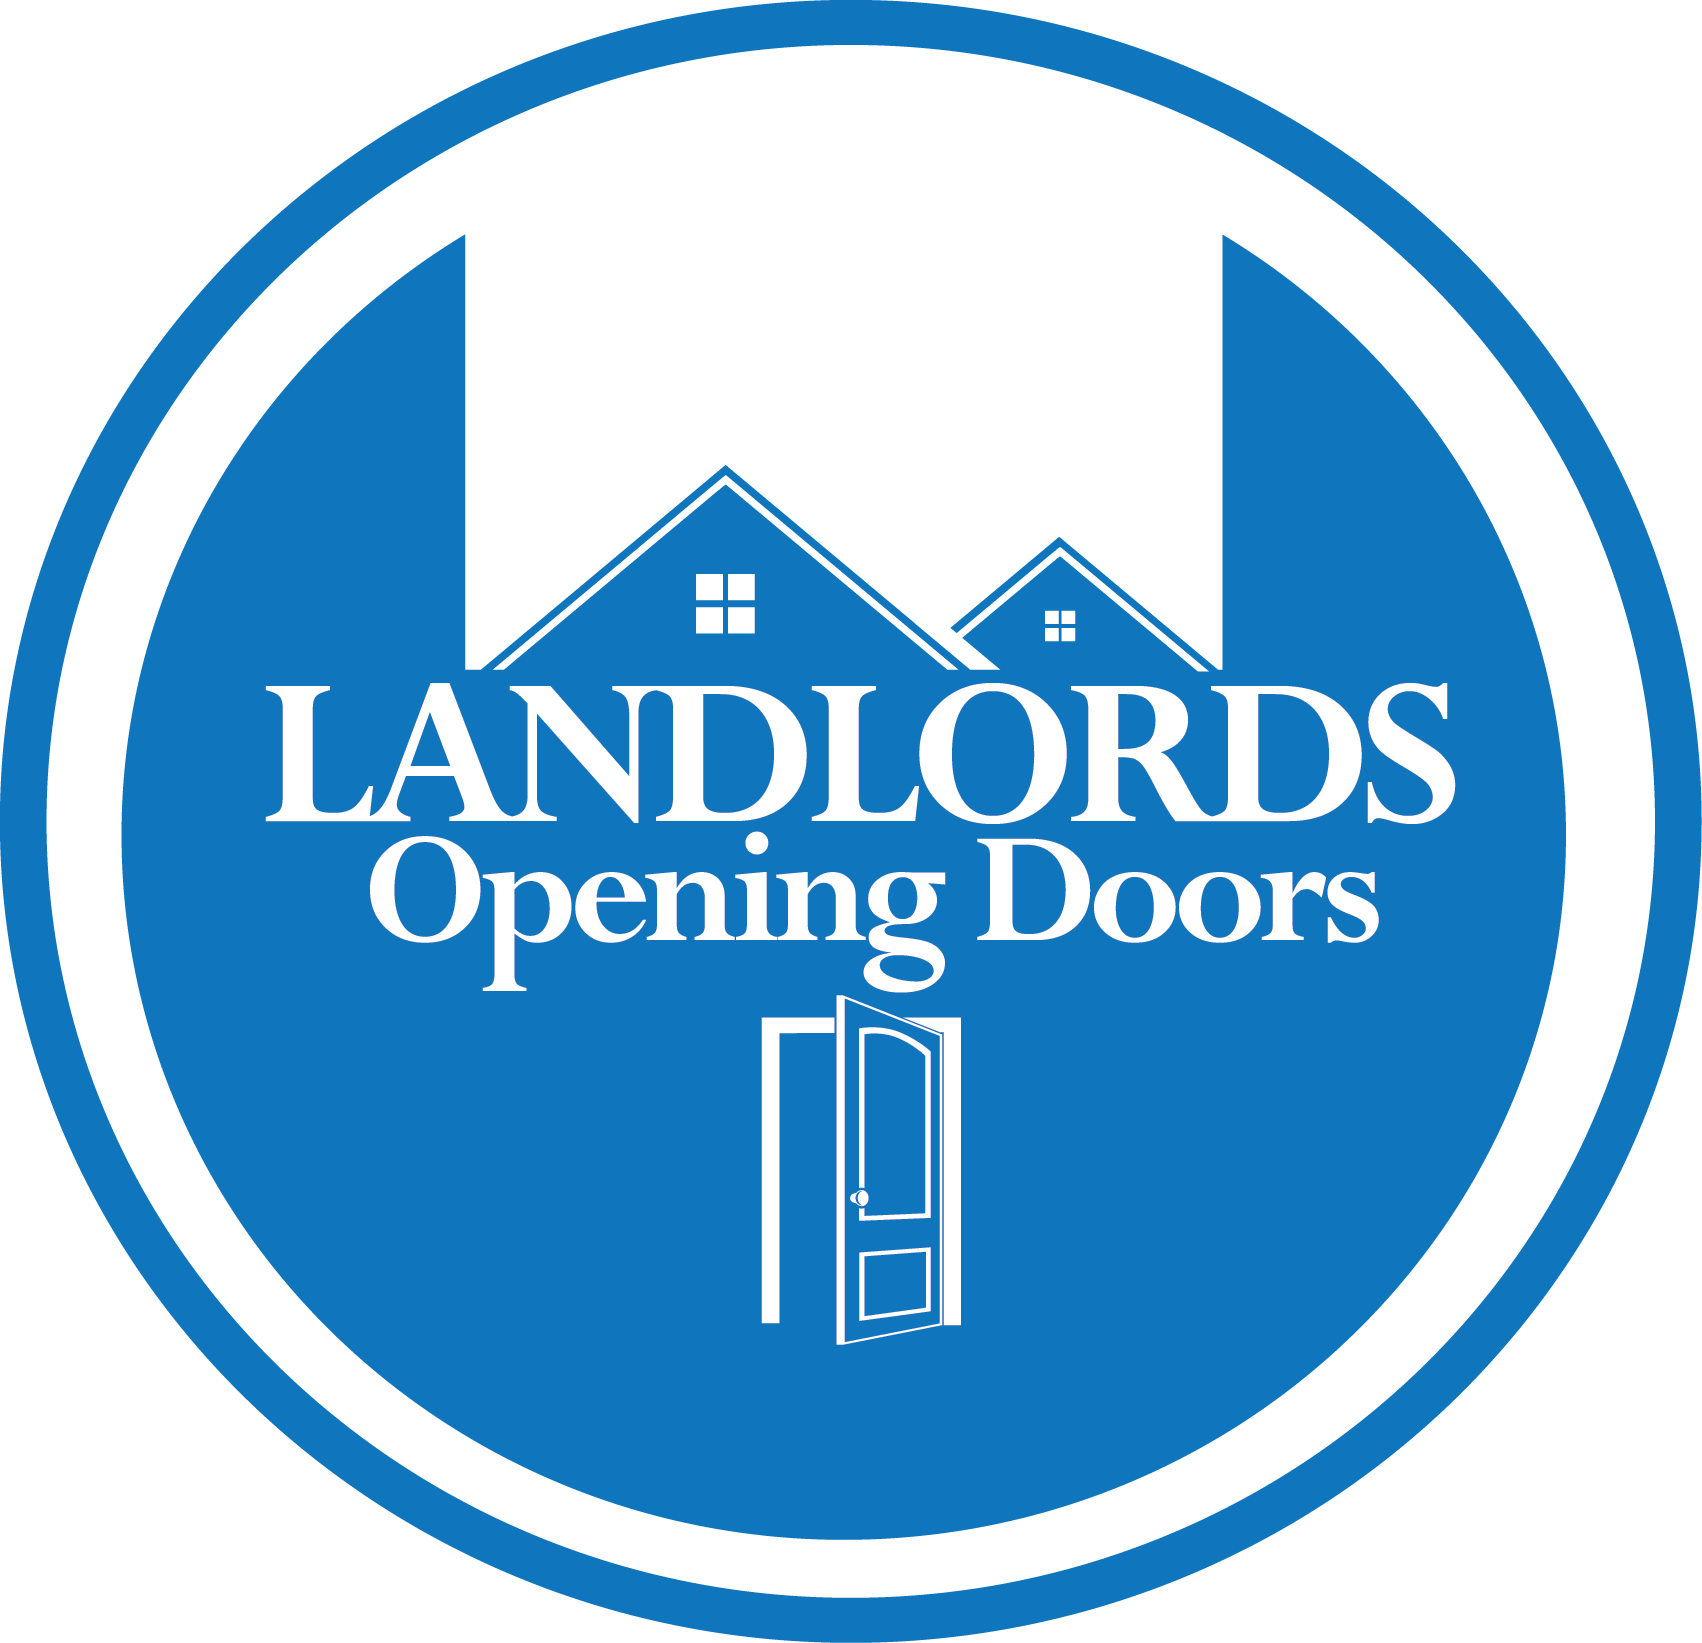 Landlords Opening Doors